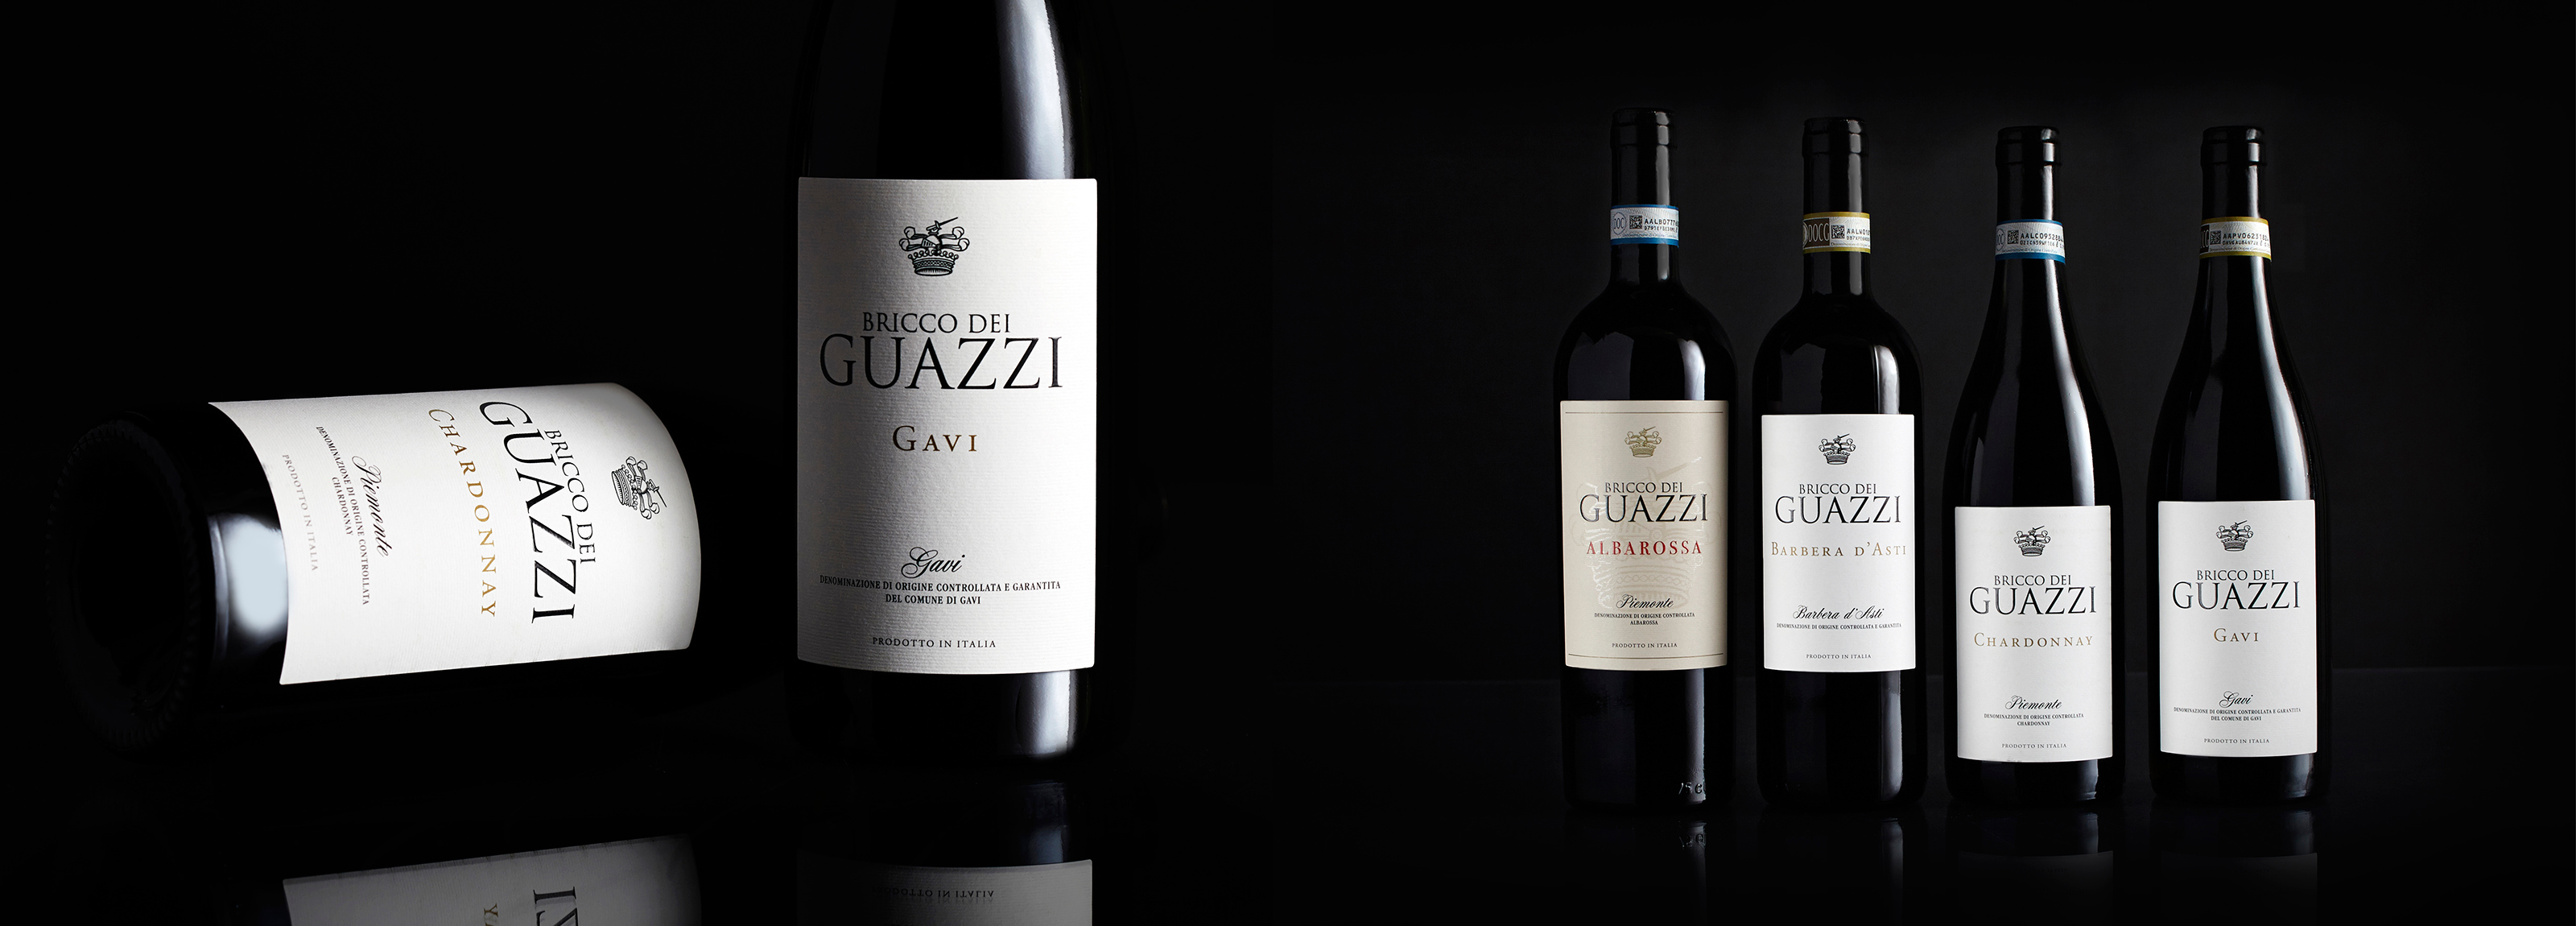 Genagricola - Bricco dei Guazzi<br>The noble identity of Monferrato